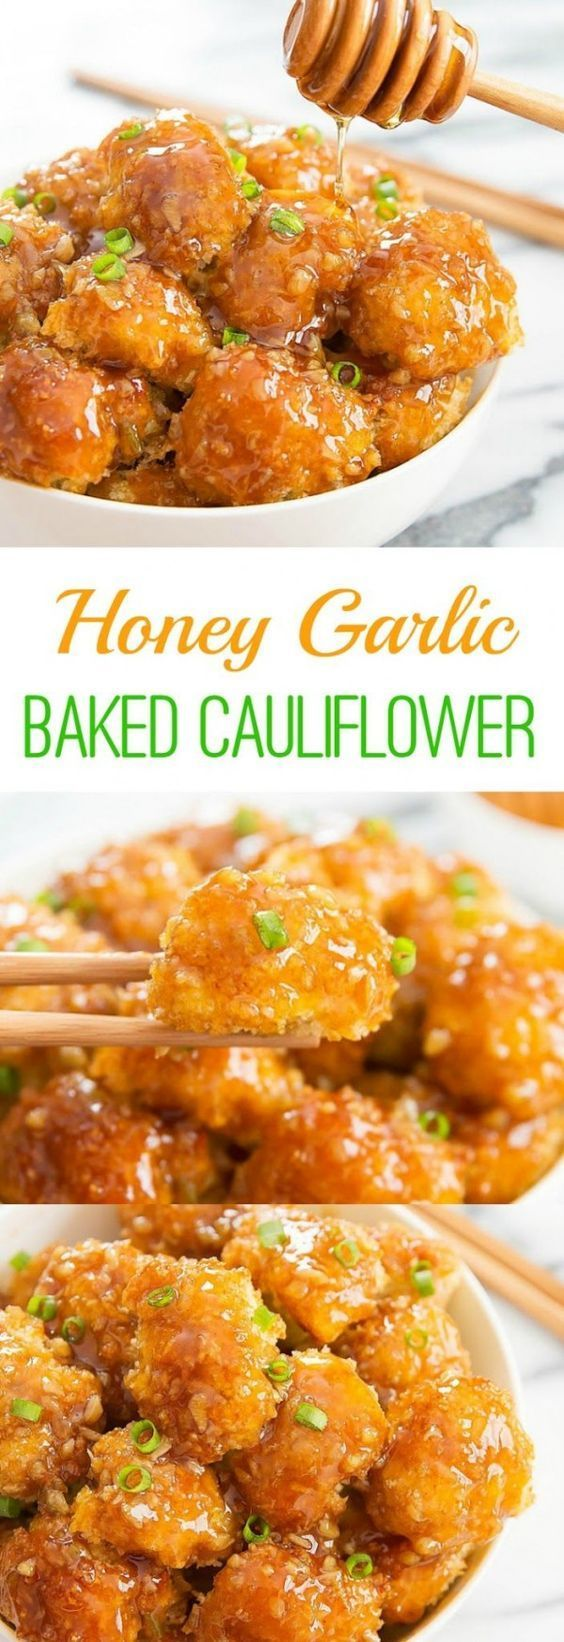 Get the recipe ♥️ Honey Garlic Baked Cauliflower @recipes_to_go